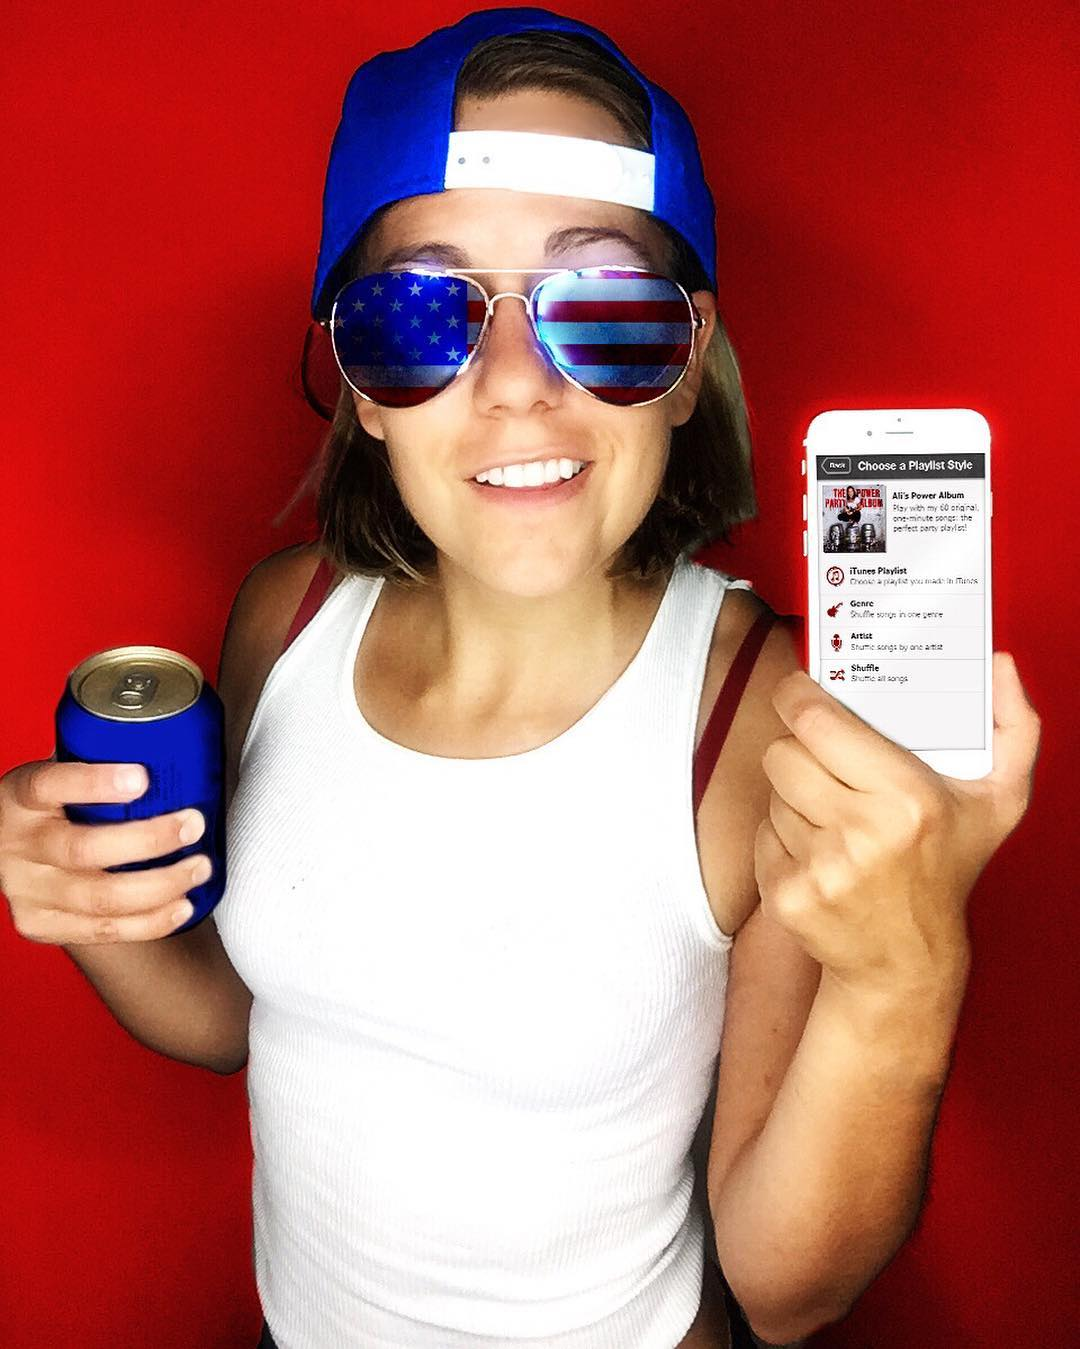 Holiday weekend! Play my drinking game! With my Power Hour App! Exclamation! (Link in my bio)